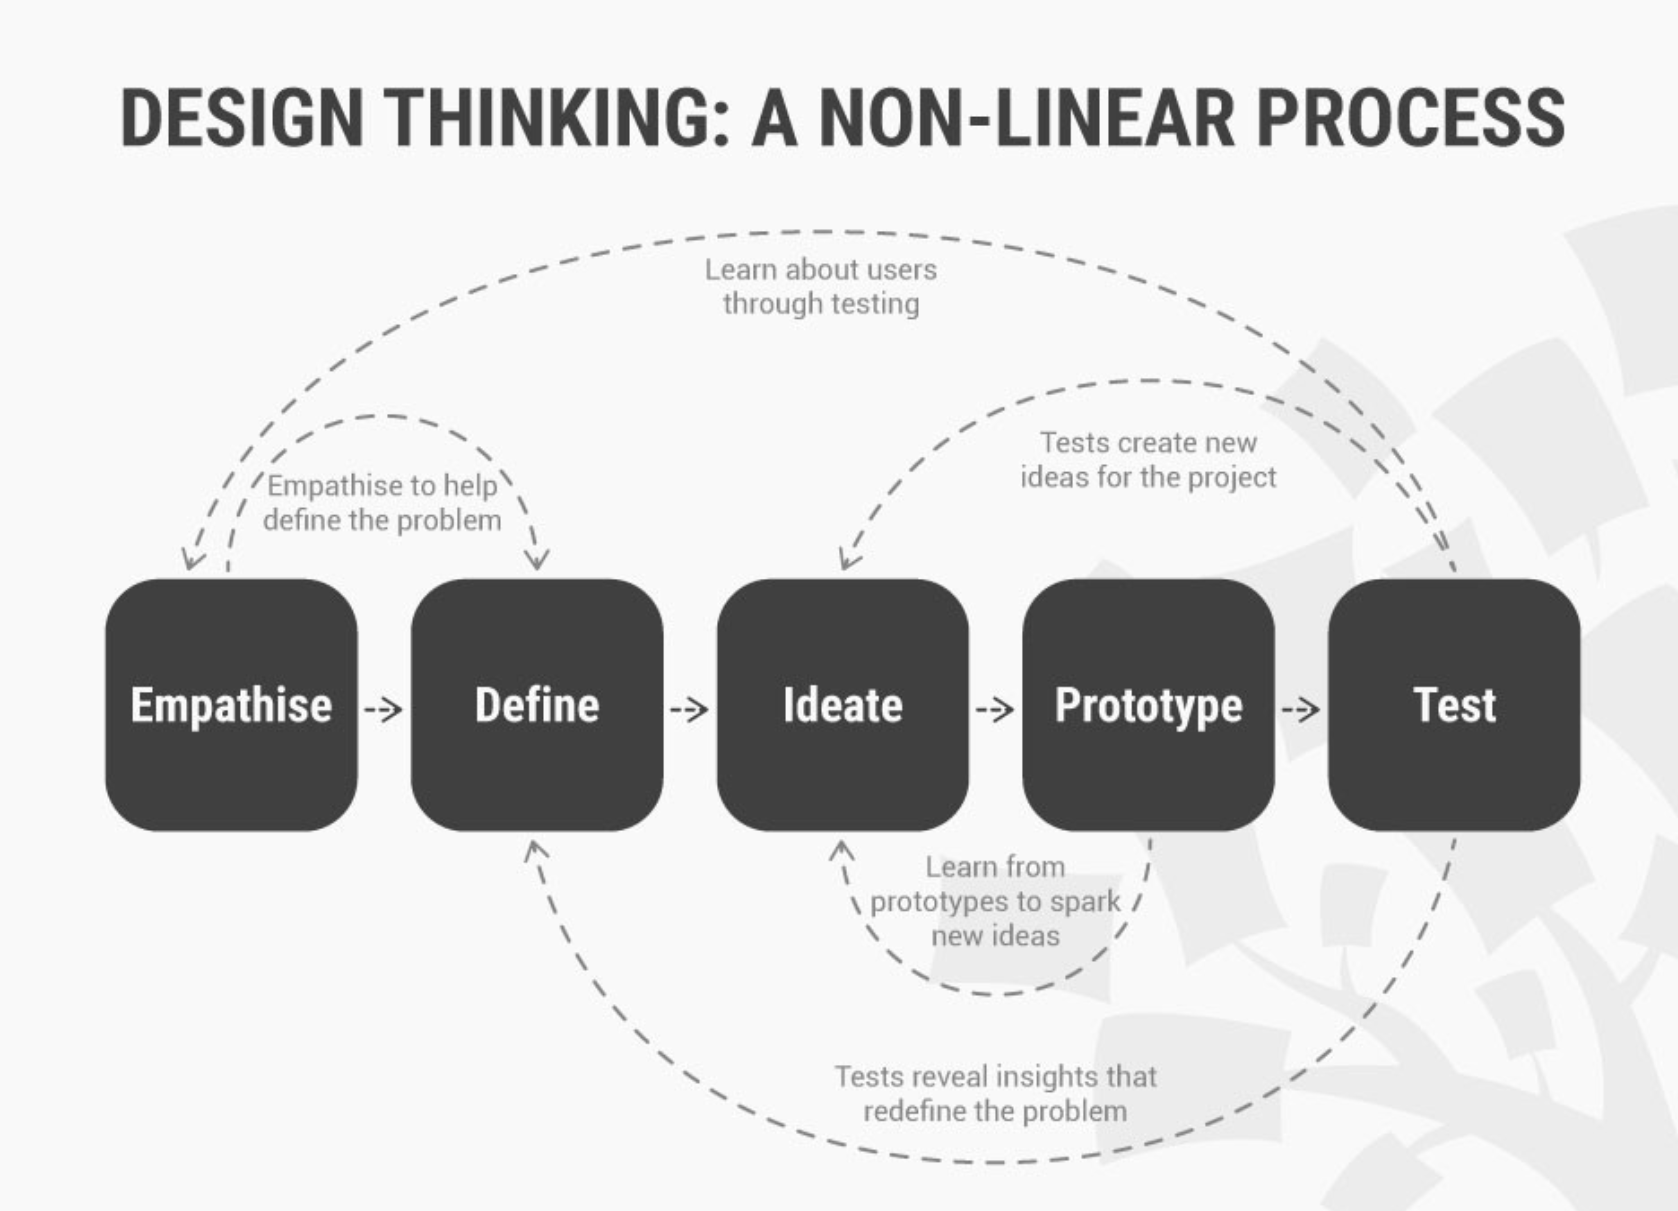 Image of the flow for Design Thinking Approach; starting from left to right are empathize, define, ideate, prototype, test